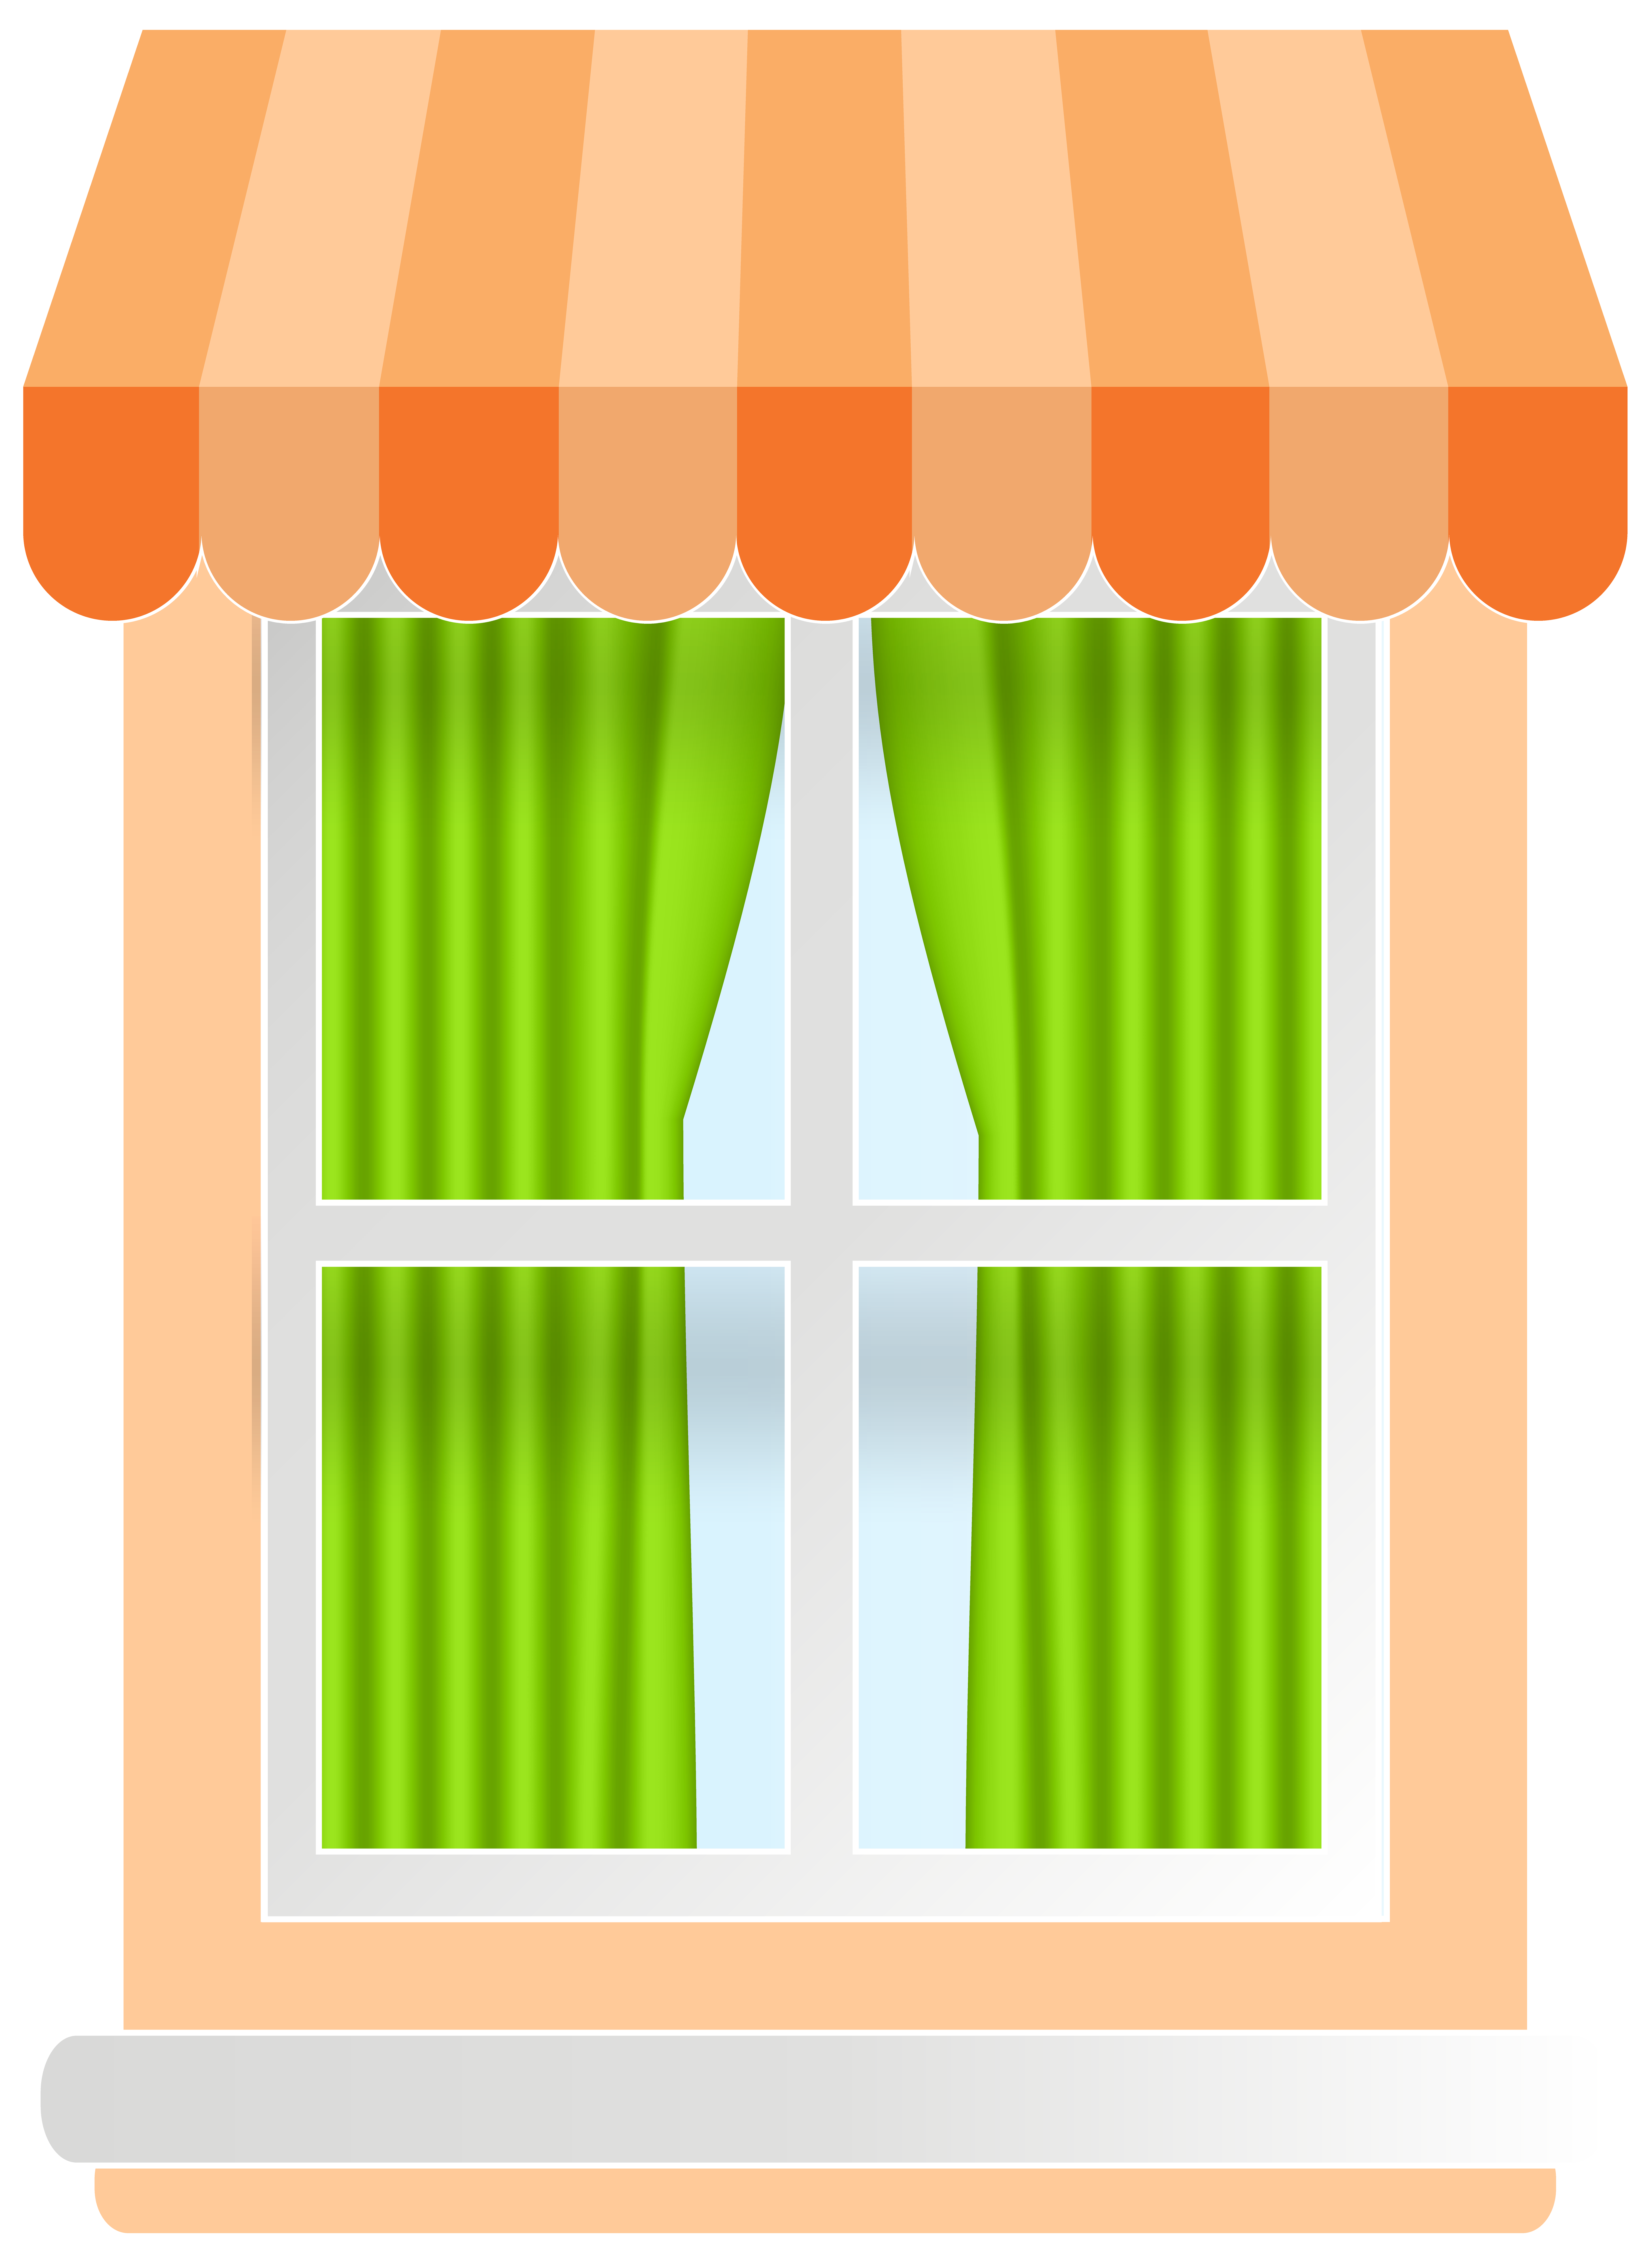 Windwo clipart picture freeuse stock Orange Window PNG Clip Art - Best WEB Clipart picture freeuse stock